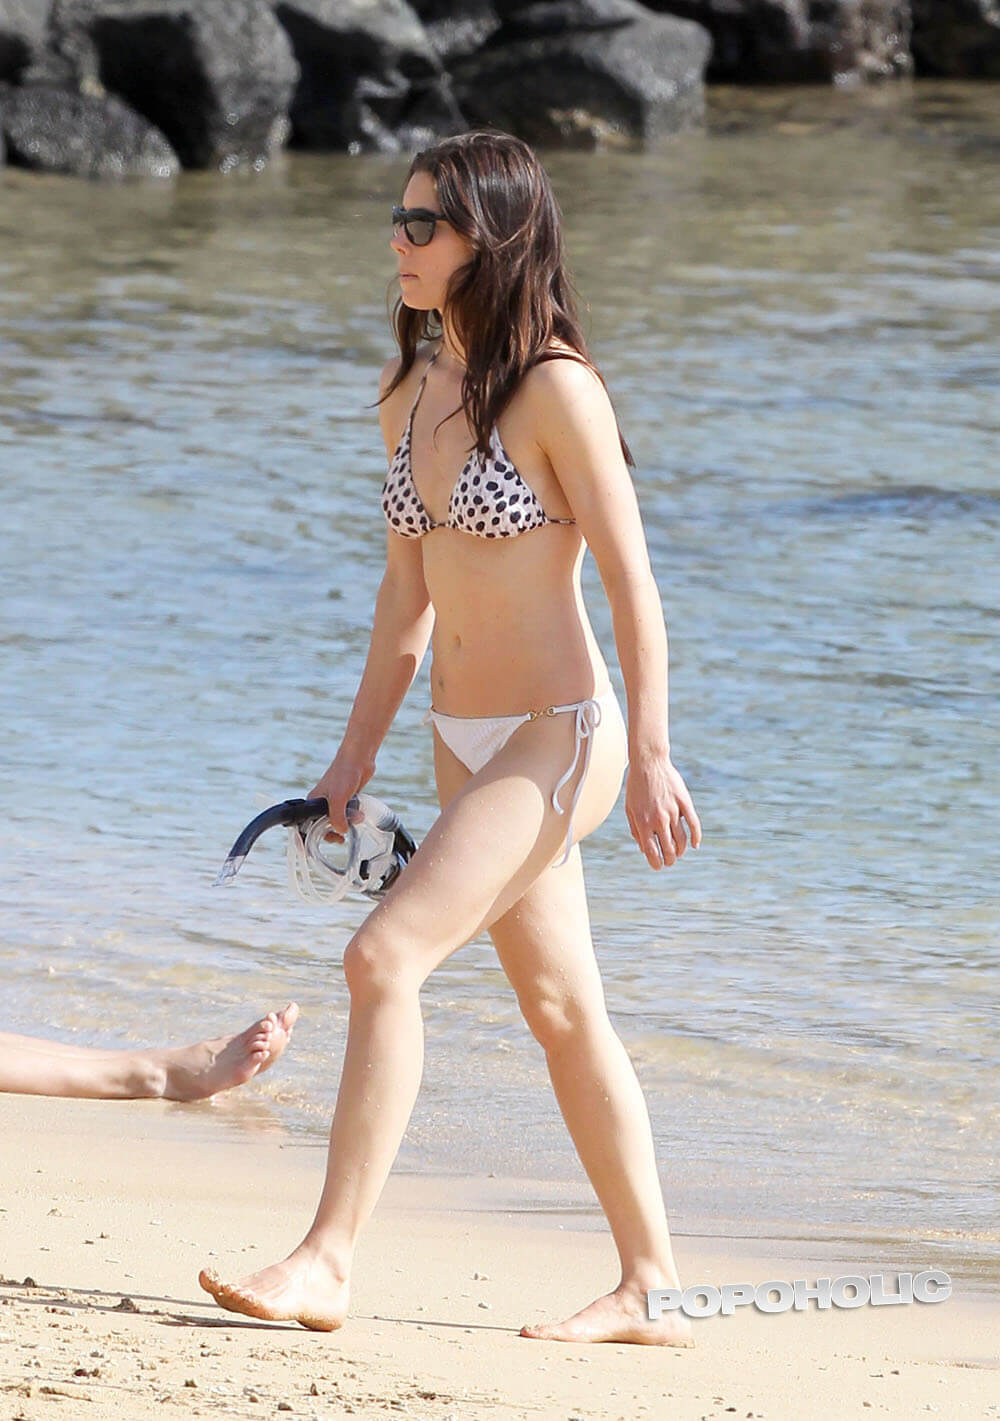 Jessica Biel hot bikini photo